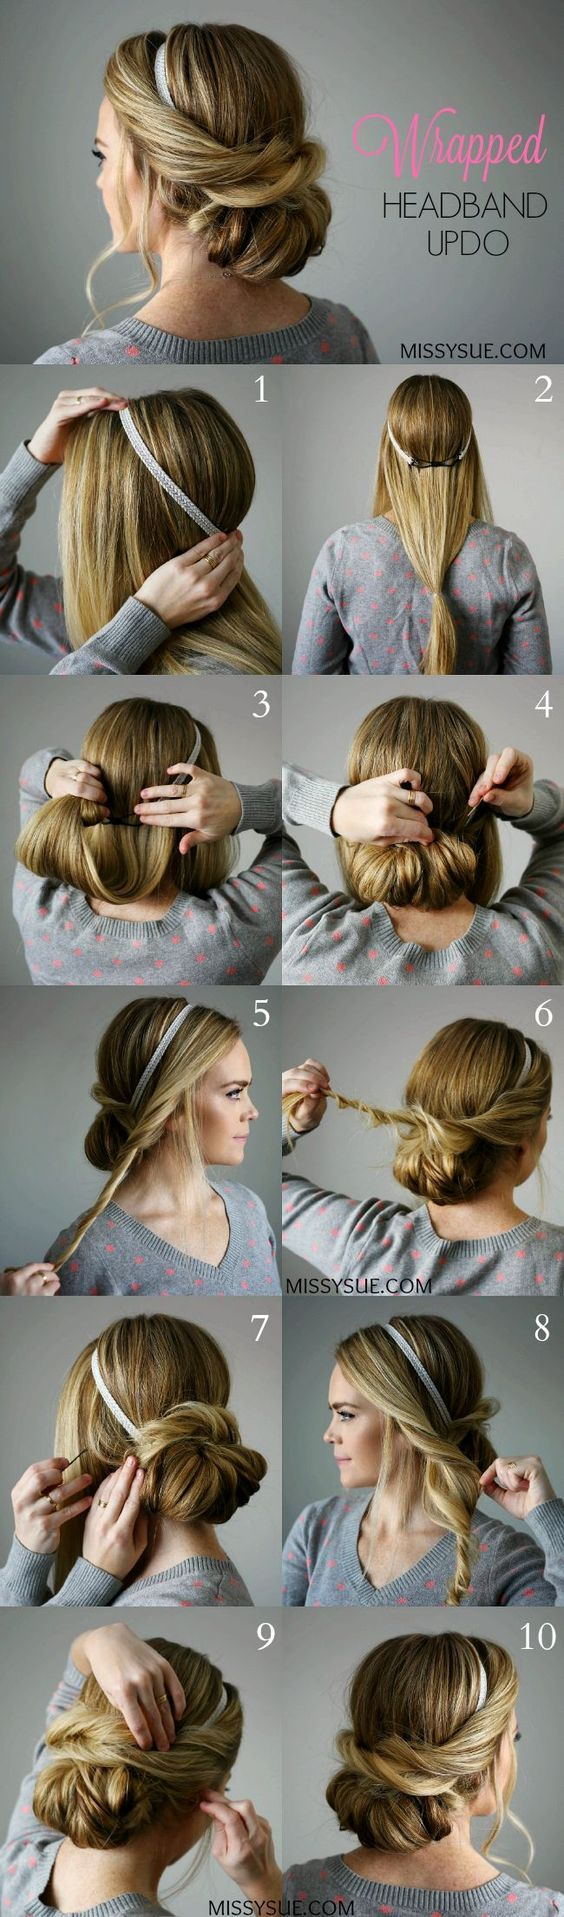 2017 06 homecoming hairstyles long hair - Best 25 Hair Updos For Prom Ideas On Pinterest Medium Hair Updo Medium Length Hair Updos And Short Hair Updo